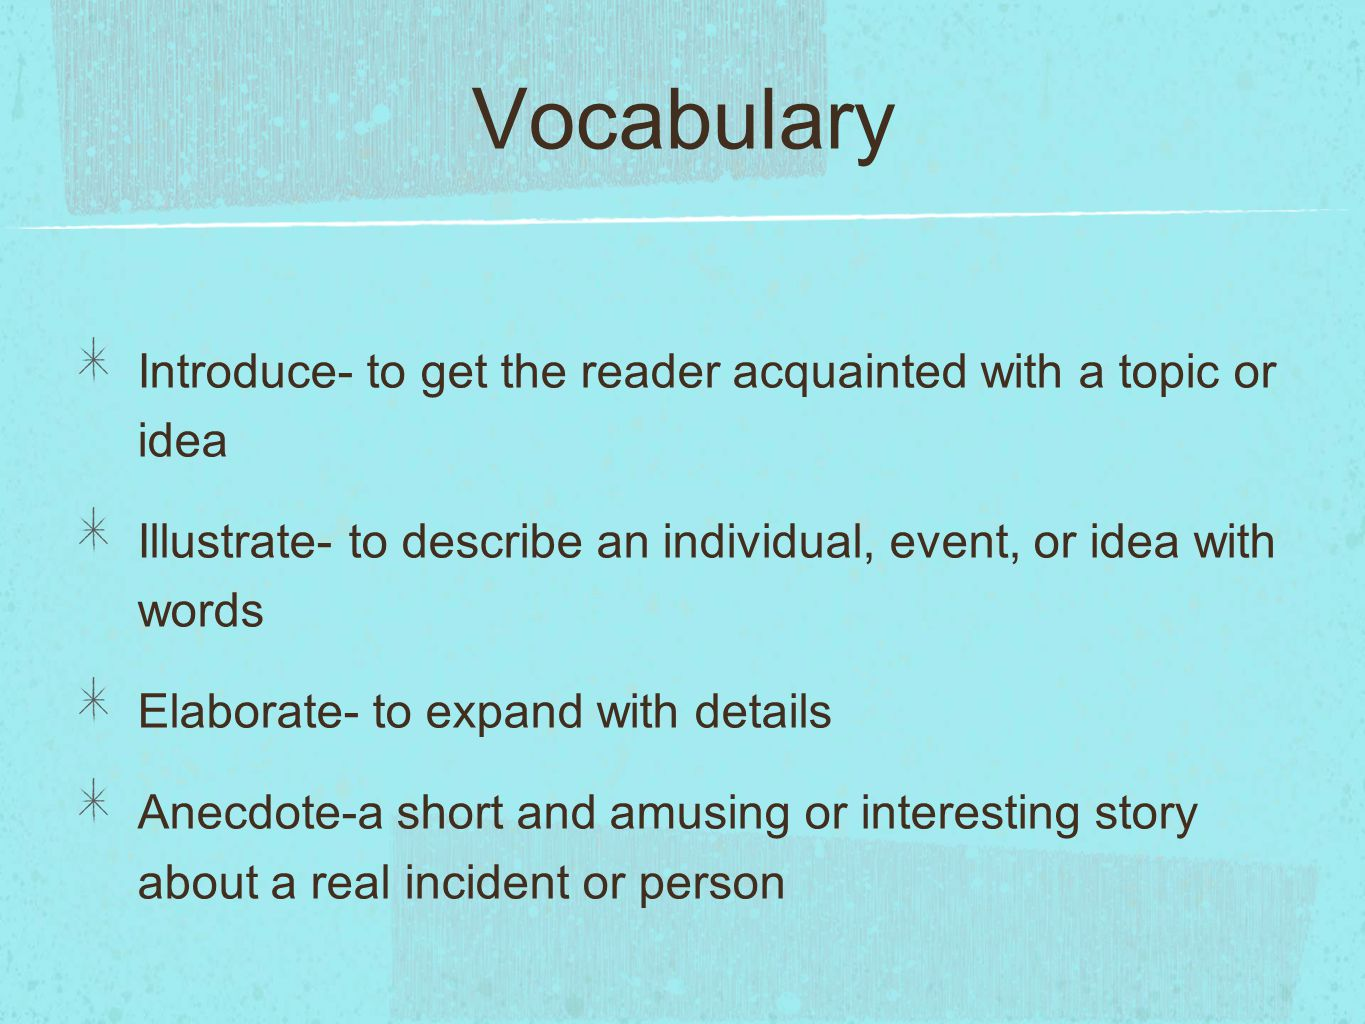 Vocabulary Introduce- to get the reader acquainted with a topic or idea Illustrate- to describe an individual, event, or idea with words Elaborate- to